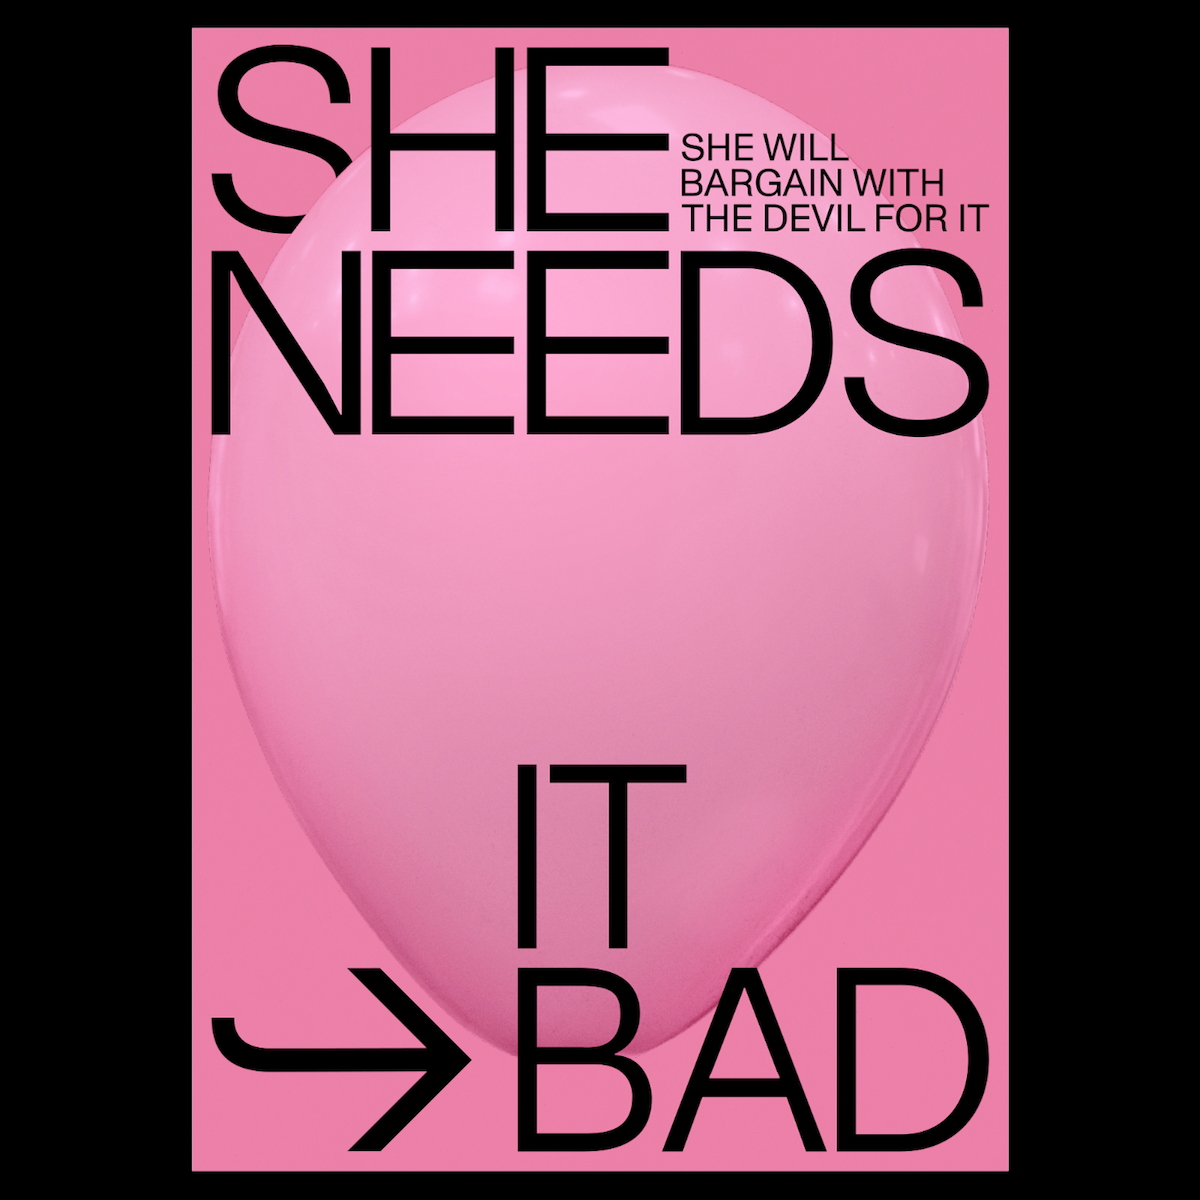 She Needs It Bad poster - showing Filippos' sharp visual language in graphic design